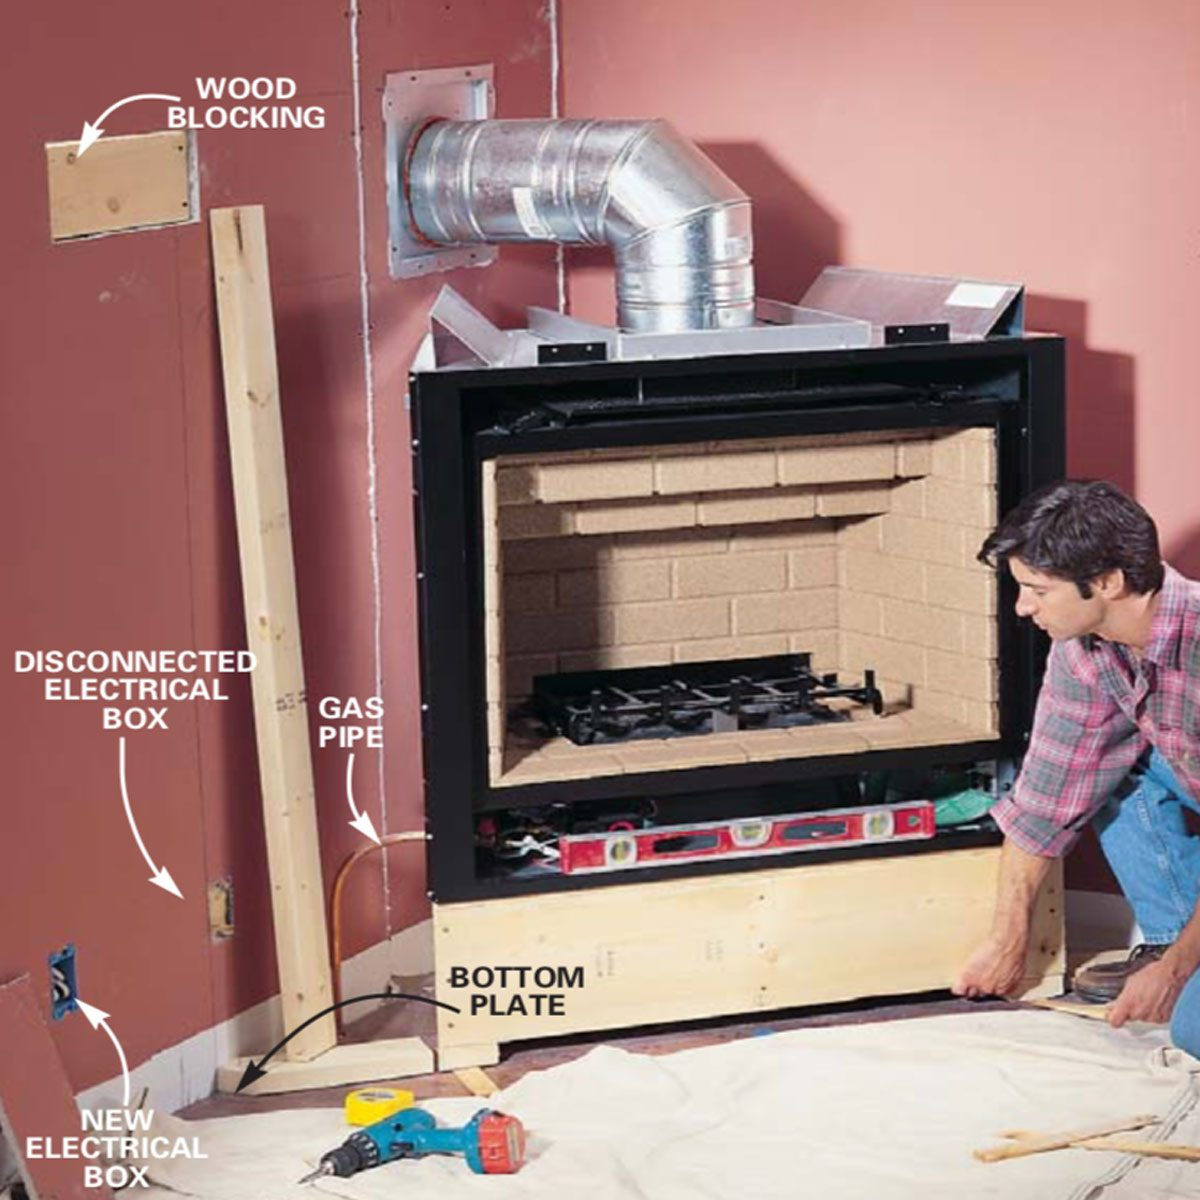 Fireplace Blower Kits How To Install A Gas Fireplace Diy Built In Gas Fireplace The